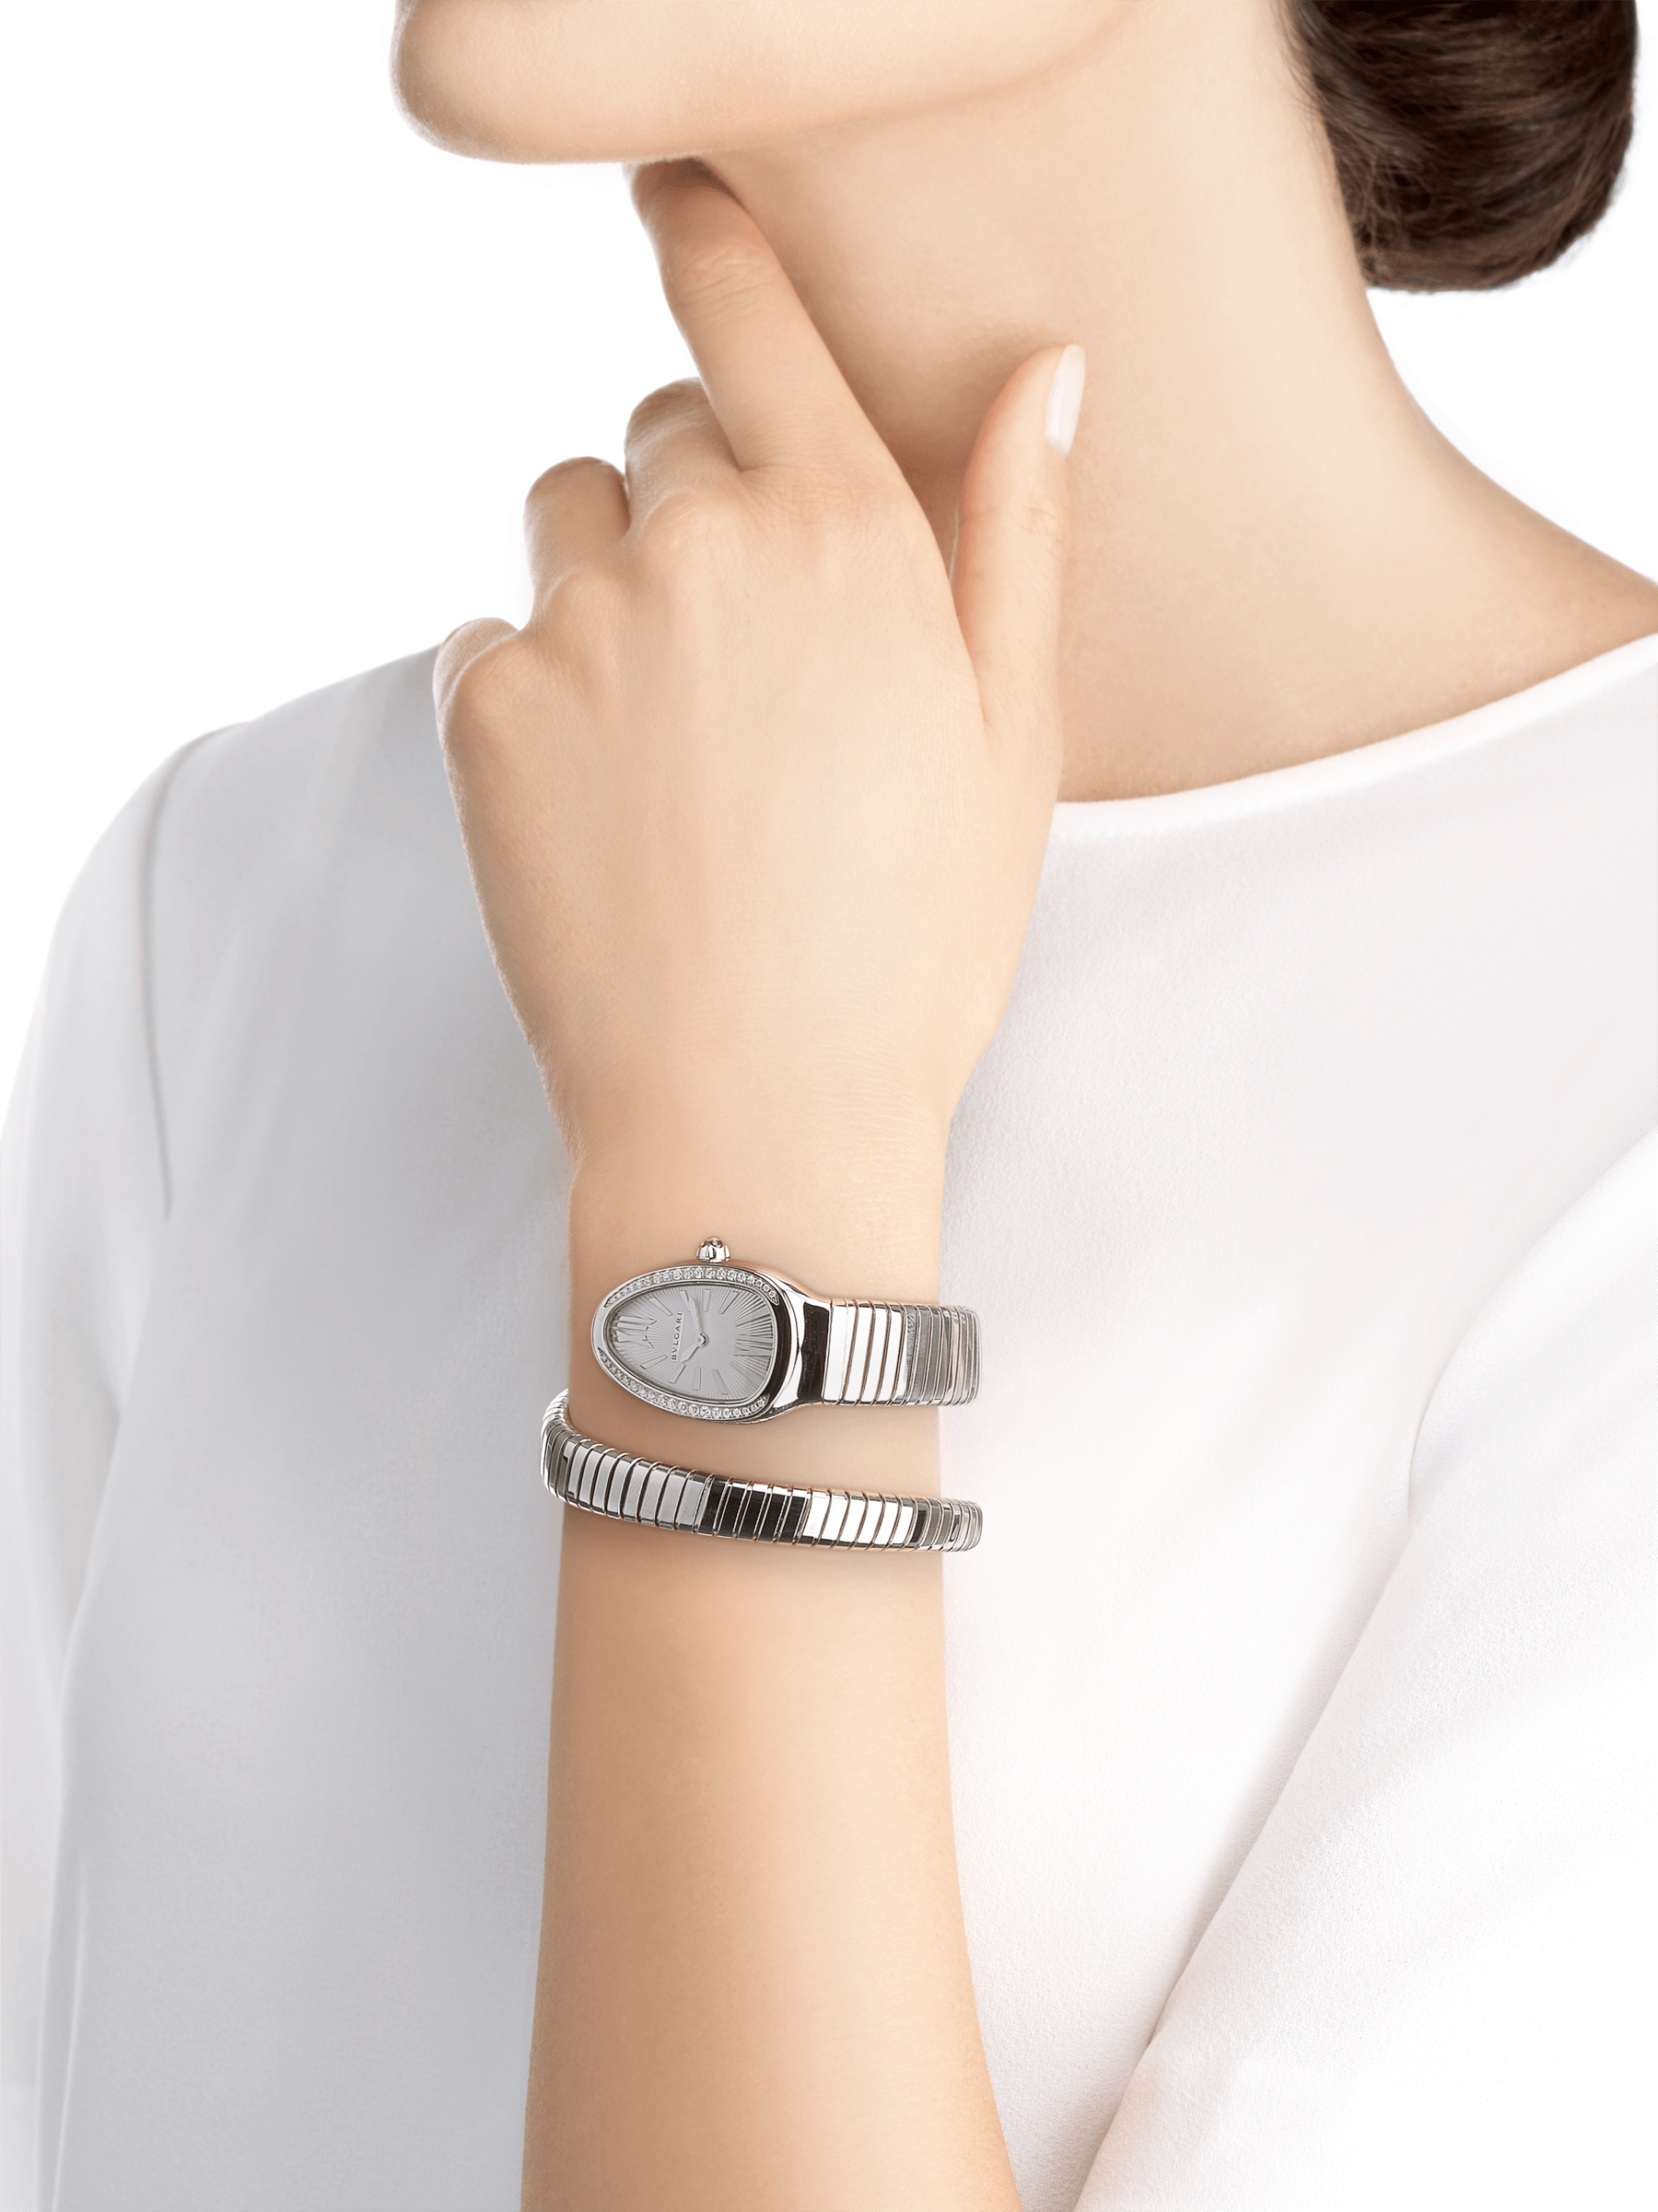 Serpenti Tubogas single spiral watch in stainless steel case and bracelet, bezel set with brilliant cut diamonds and silver opaline dial. Large Size. SrpntTubogas-white-dial2 image 5